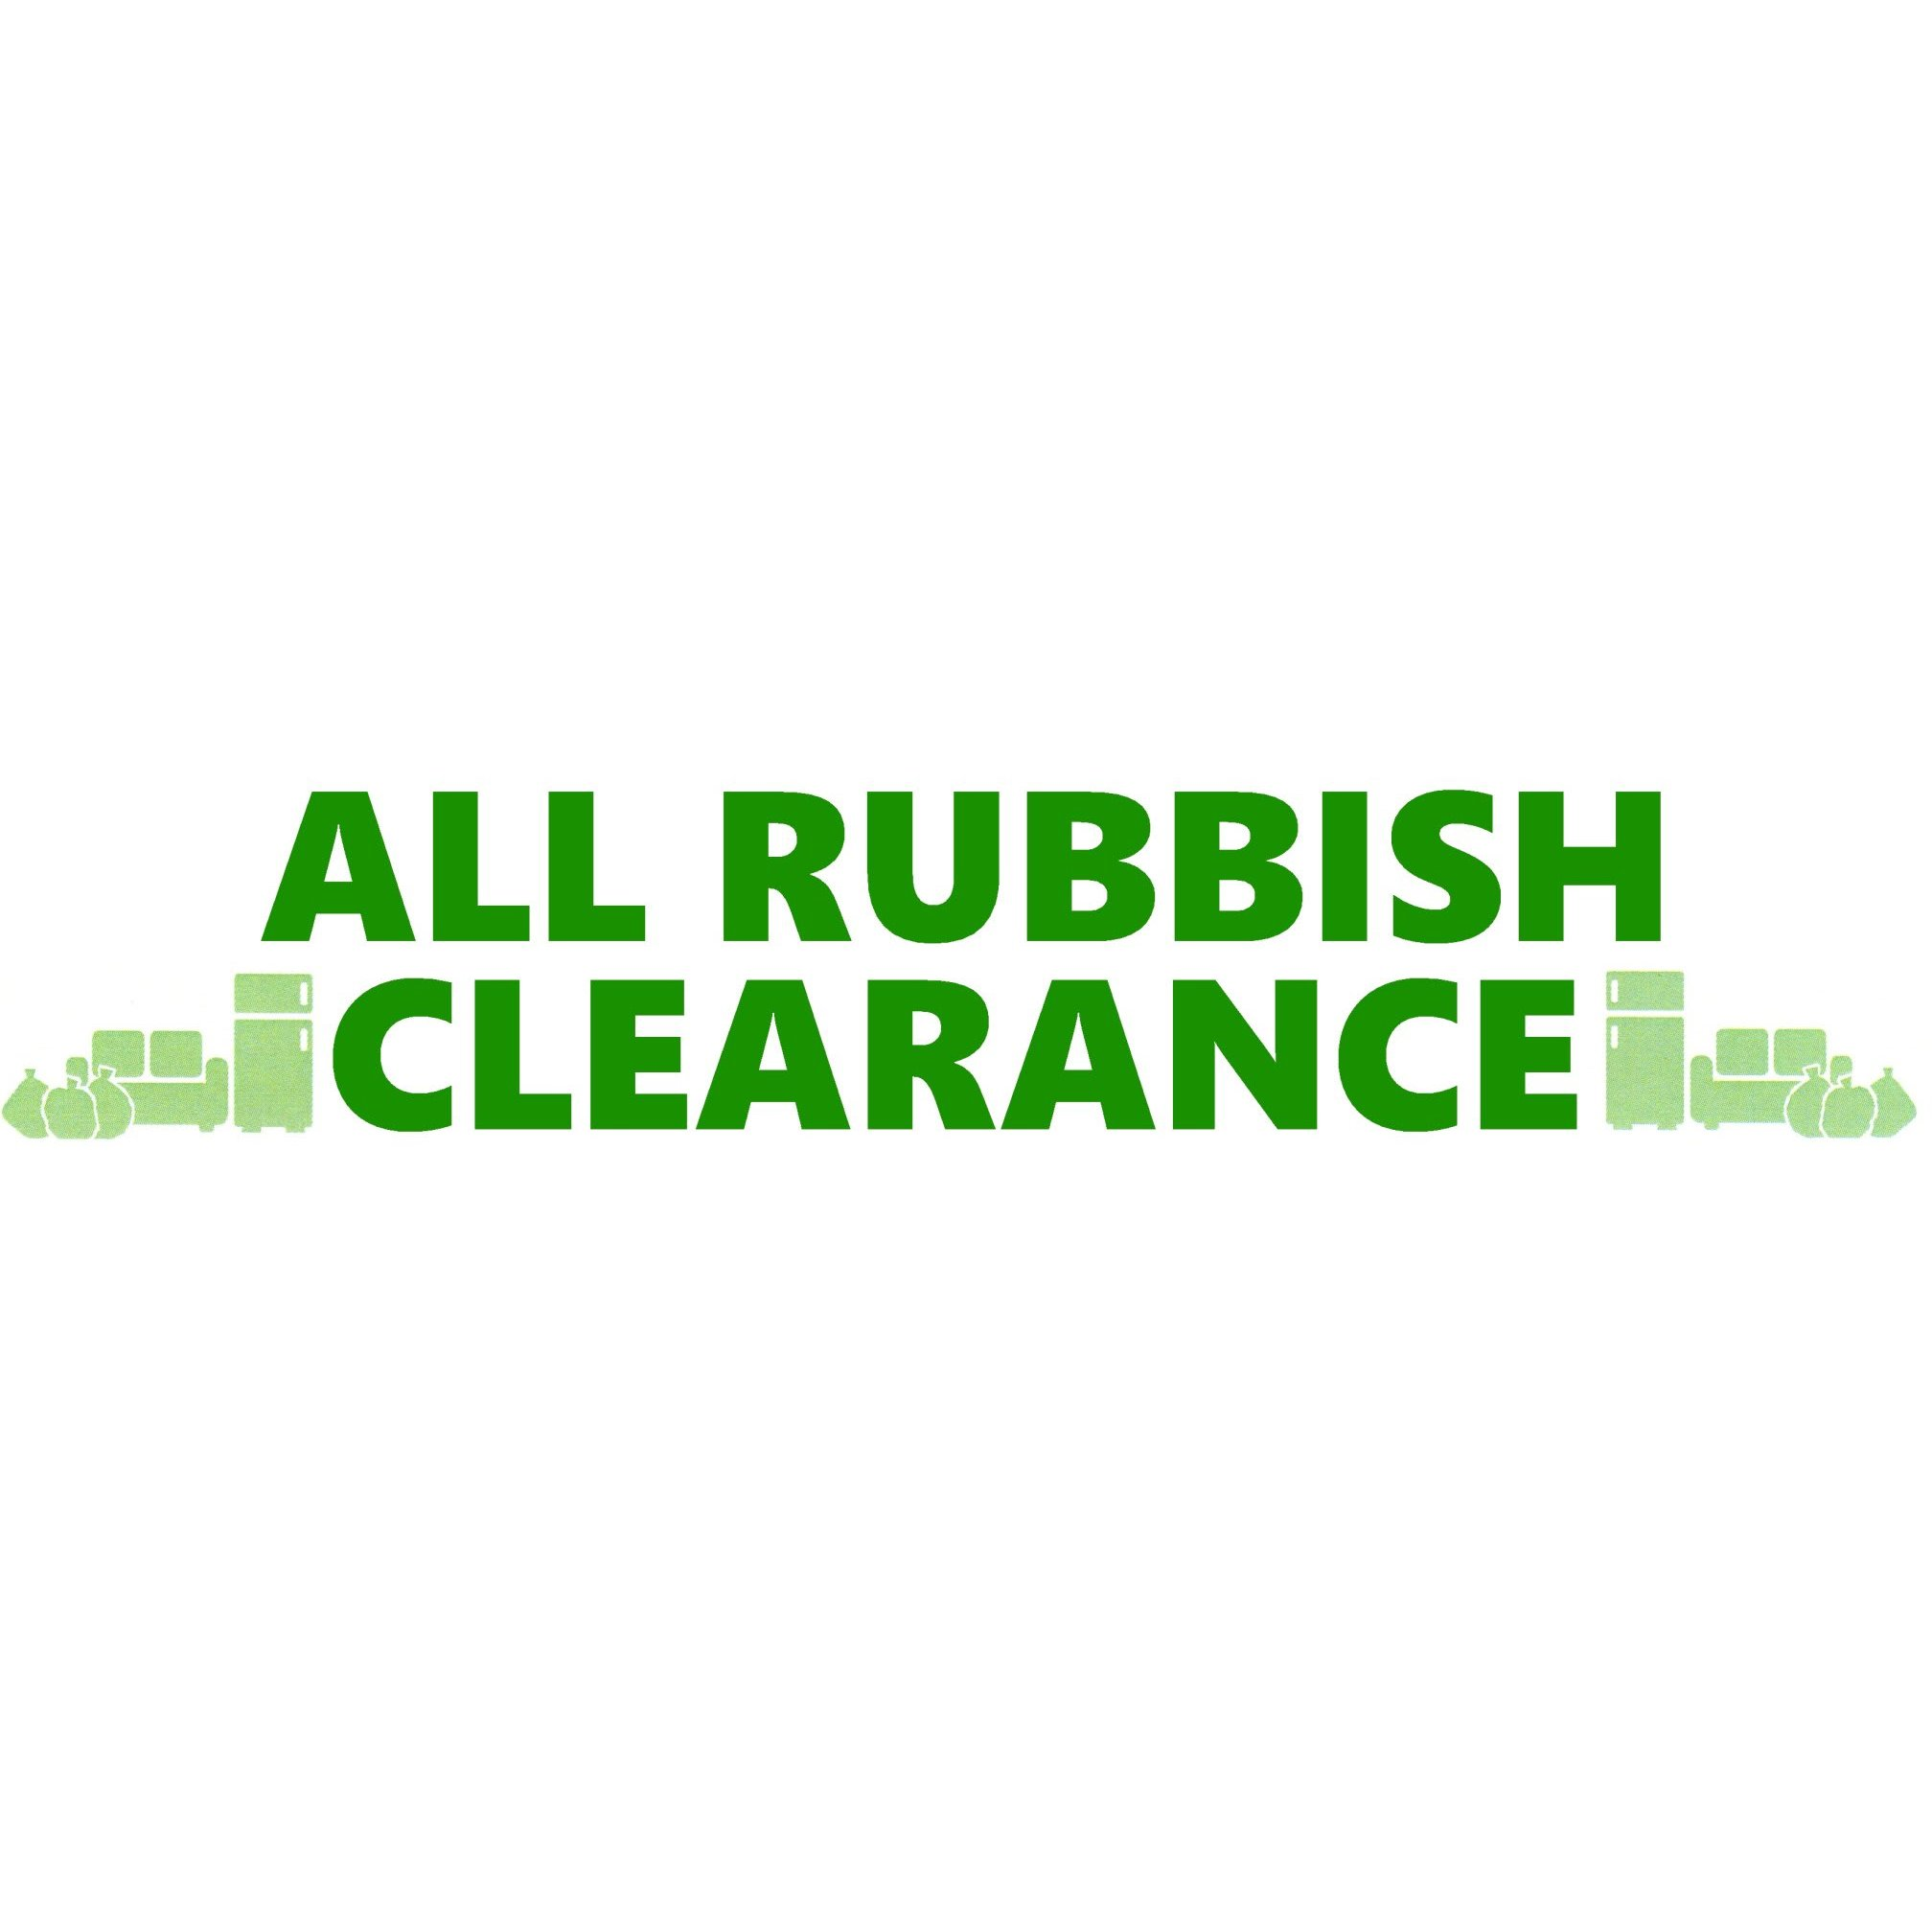 All Rubbish Clearance